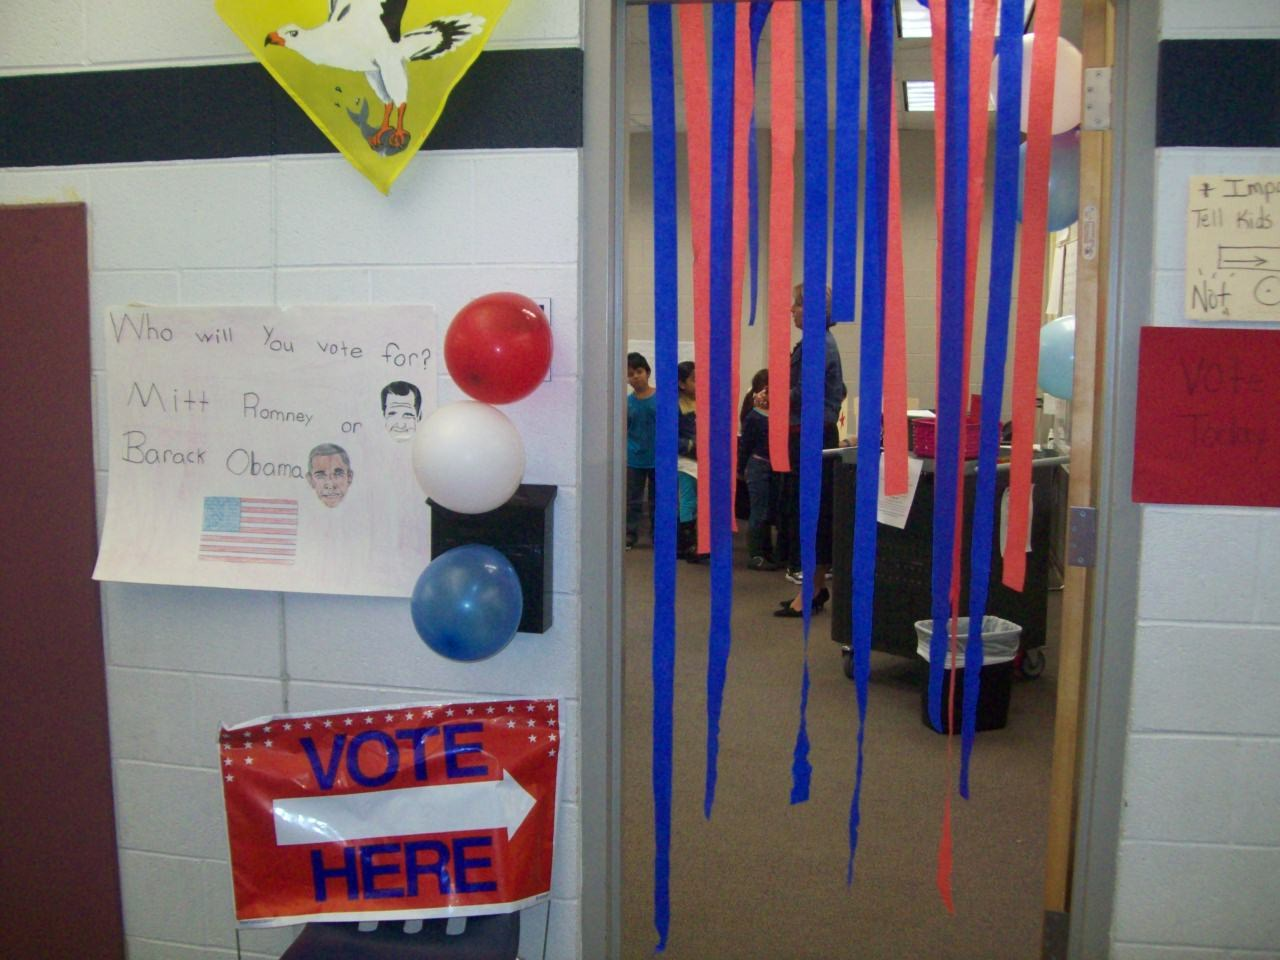 Room 219 was decorated to welcome K-third grade students as they came ...